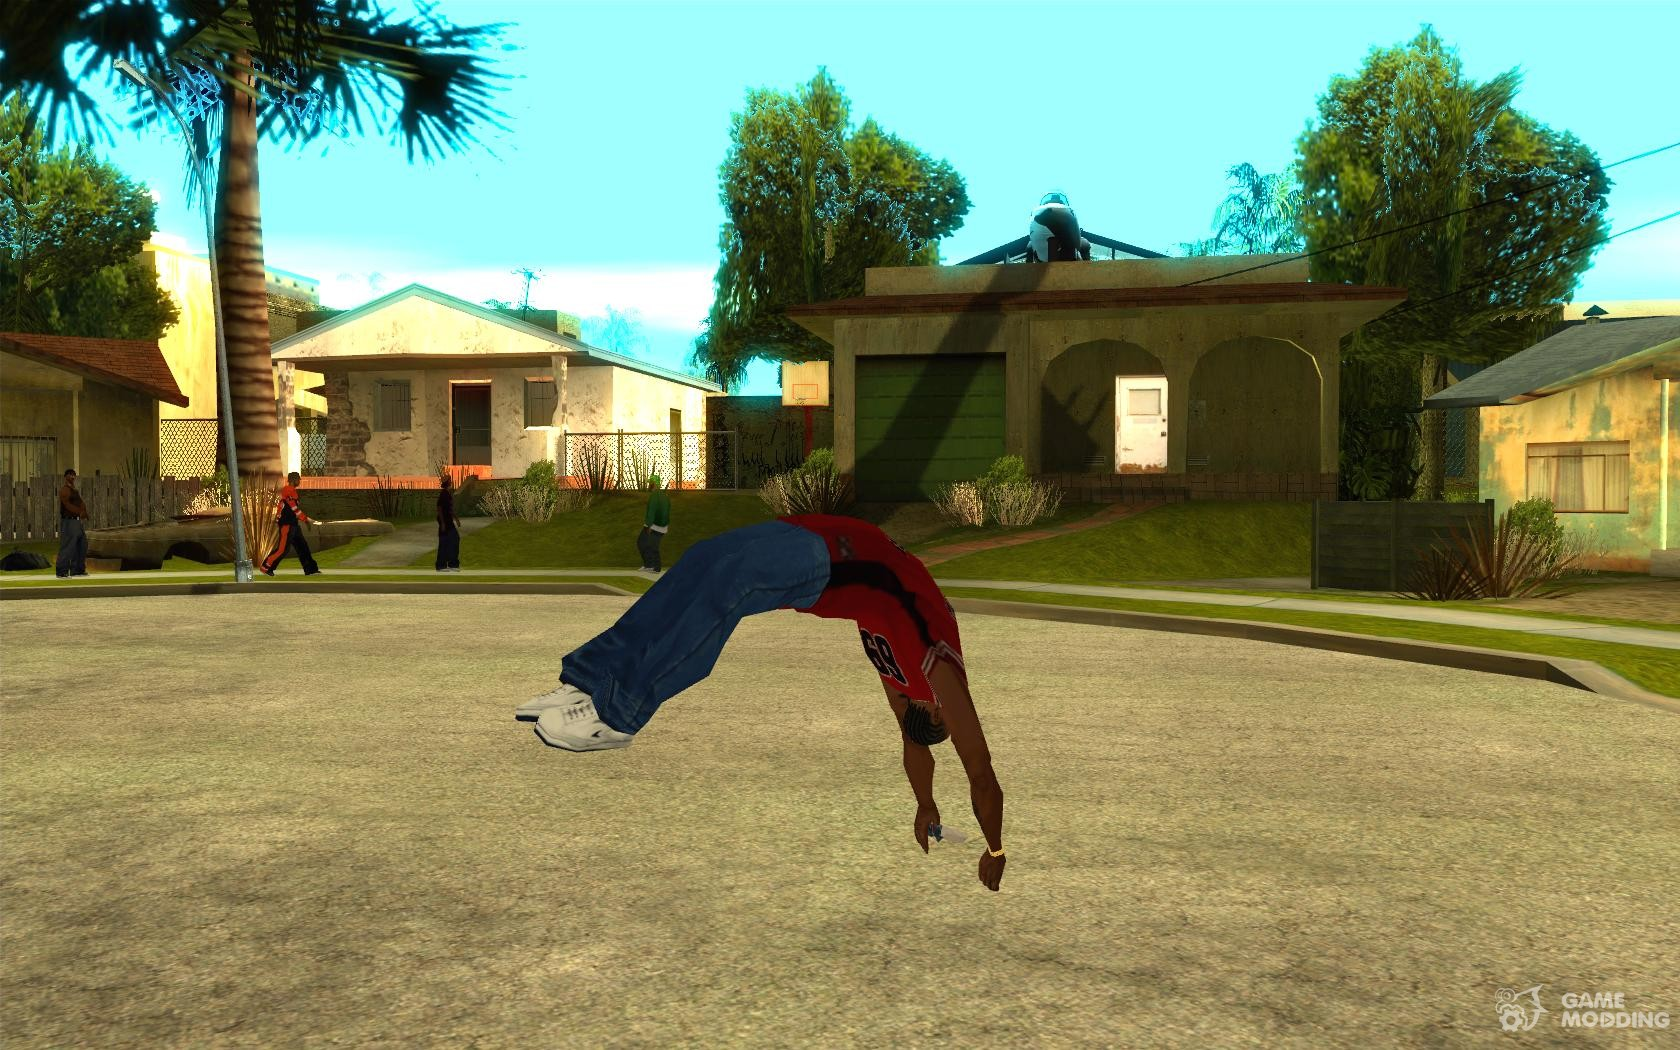 Gta san andreas parkour mod:) with download link youtube.